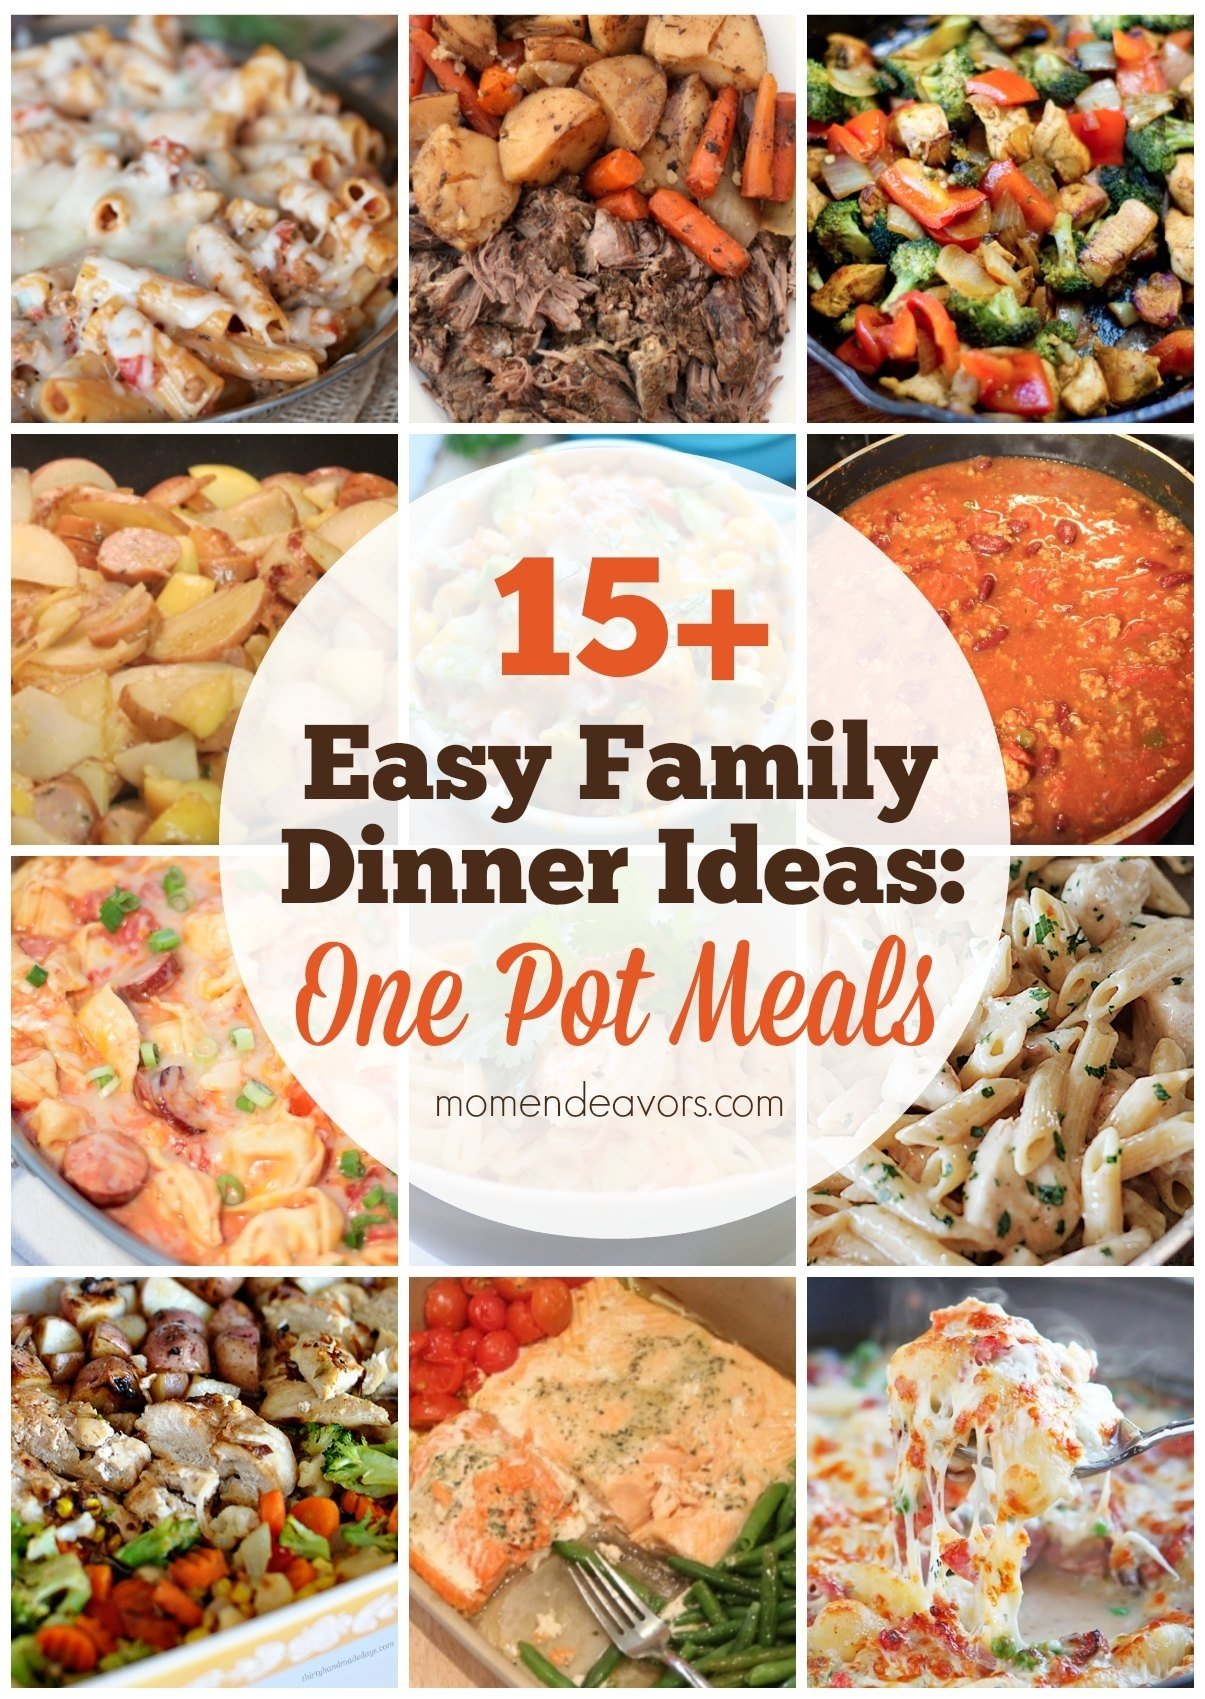 10 Fashionable Meal Ideas For Family Of 4 4 easy family dinners to serve your family this week 2020